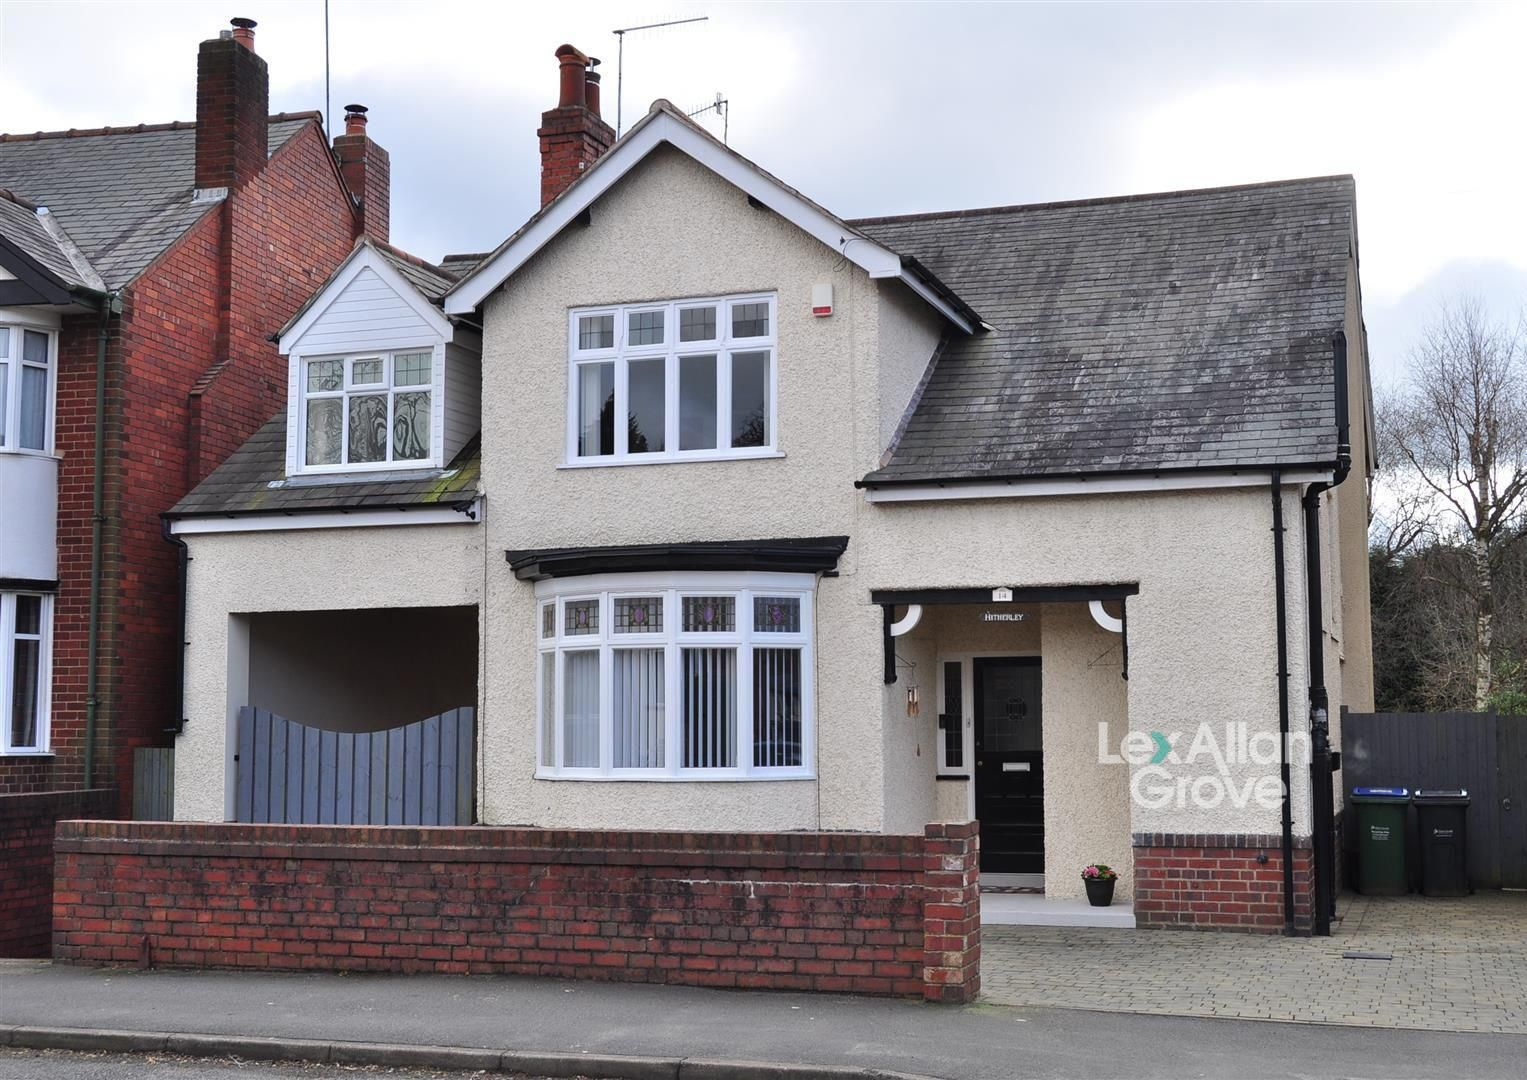 4 bed detached for sale, B64